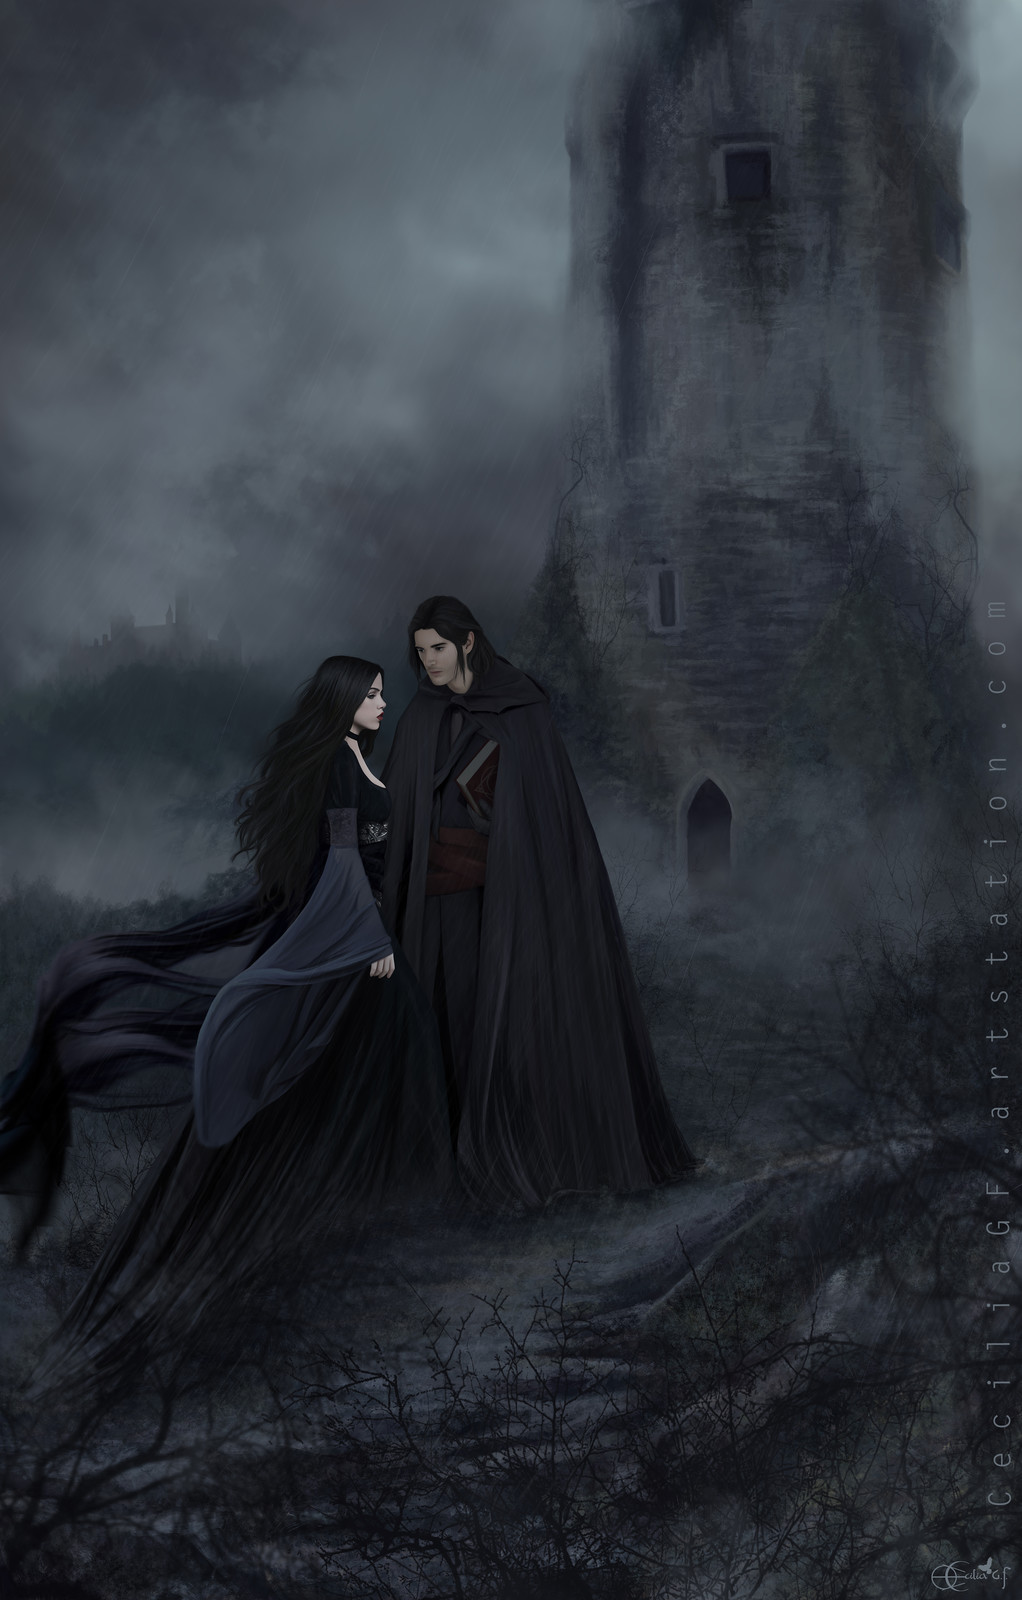 The witch and the monk